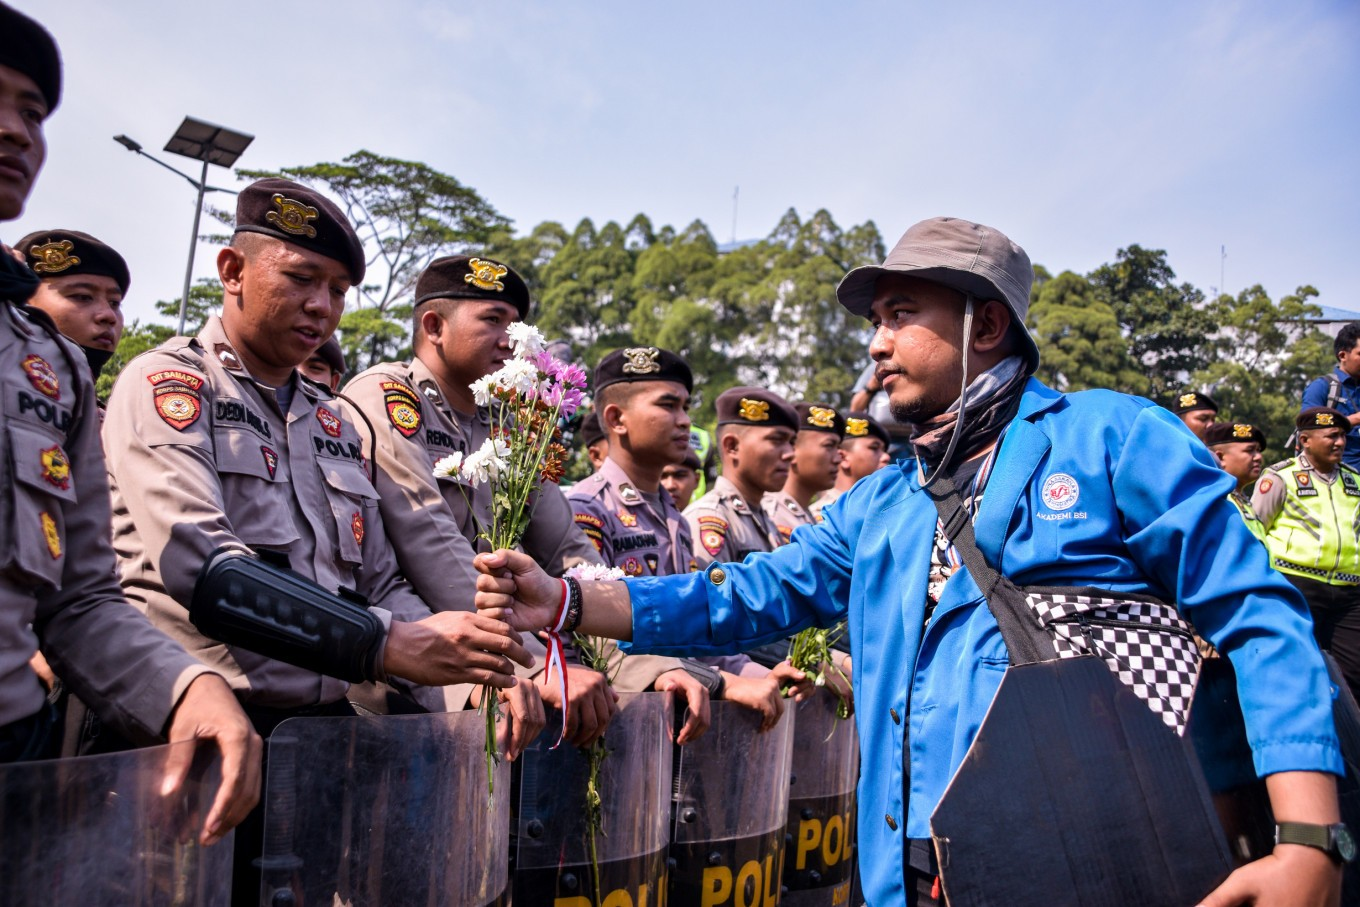 Flower power: Students in Jakarta hand out blossoms as sign of peaceful protests